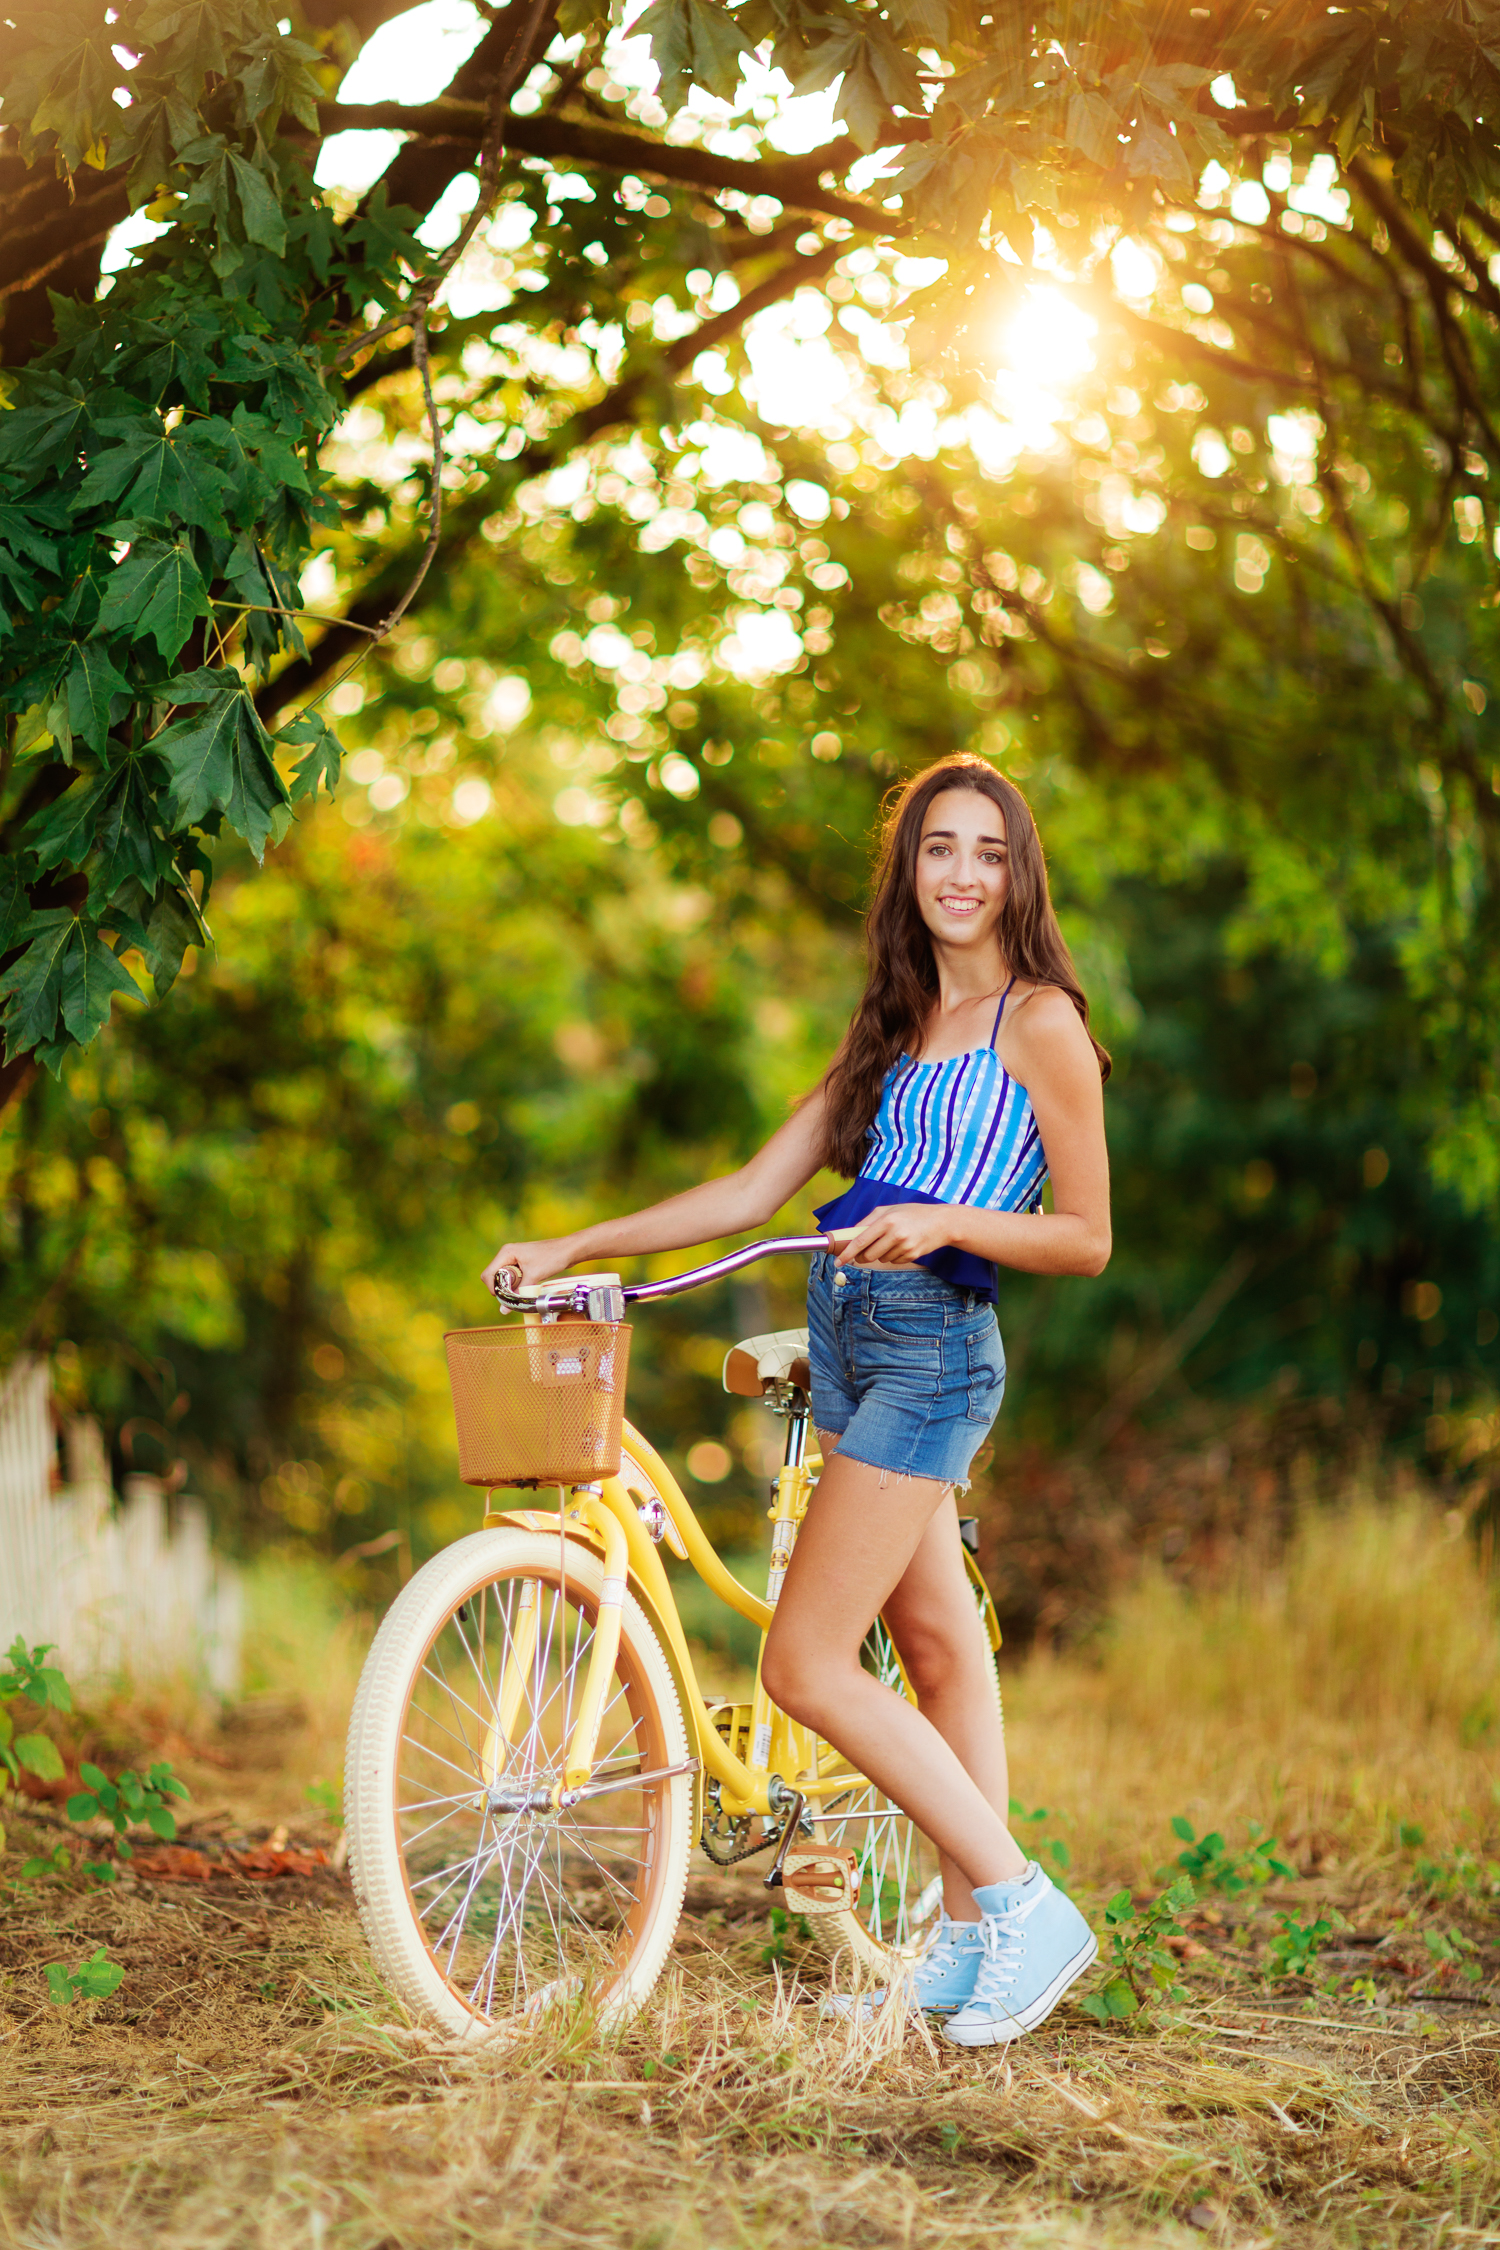 ariella-noelle-photography-summer-senior-sessions-portraiture-seattle-area-beautiful-senior-portraiture-1-14.jpg